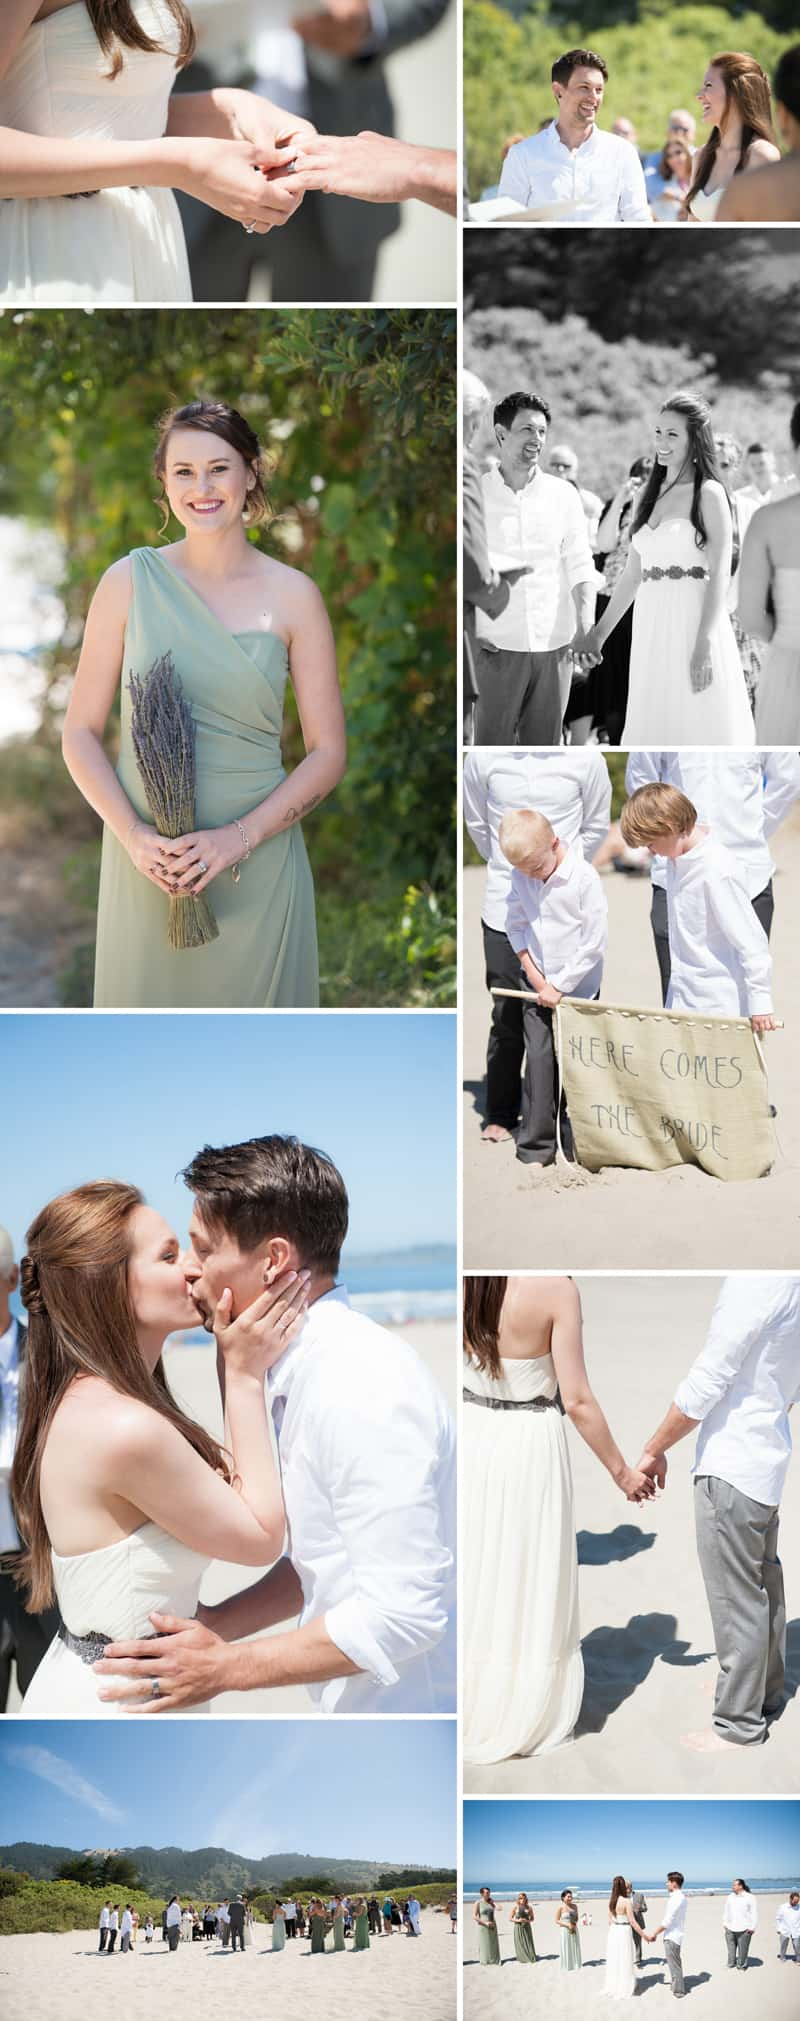 An Intimate Rustic Beach Wedding 2